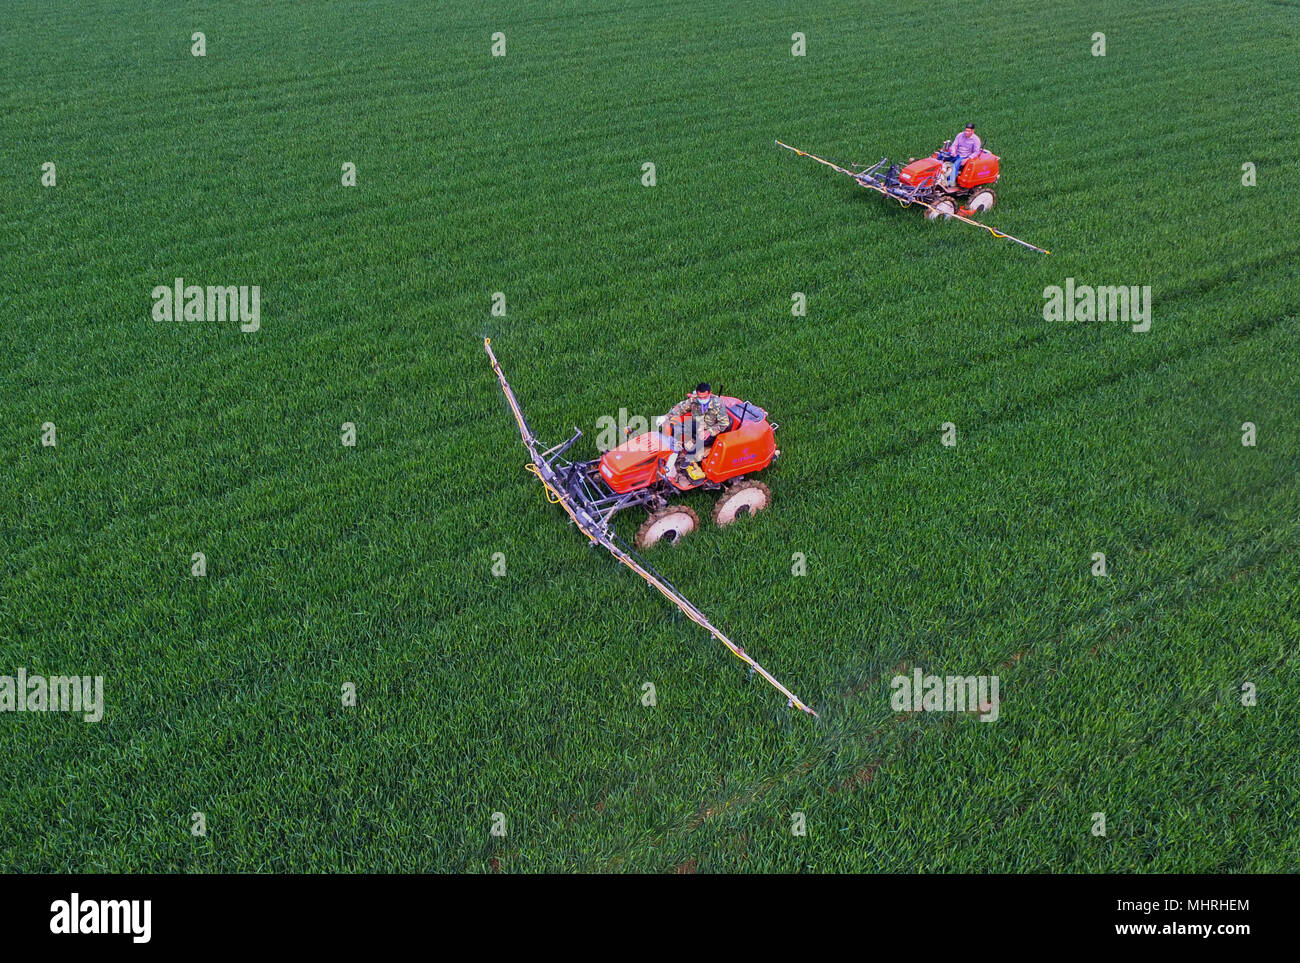 Shijiazhuang, China's Hebei Province. 2nd May, 2018. Villagers operate farm machines at a field in Nanhe County, north China's Hebei Province, May 2, 2018. Credit: Yang Shiyao/Xinhua/Alamy Live News - Stock Image